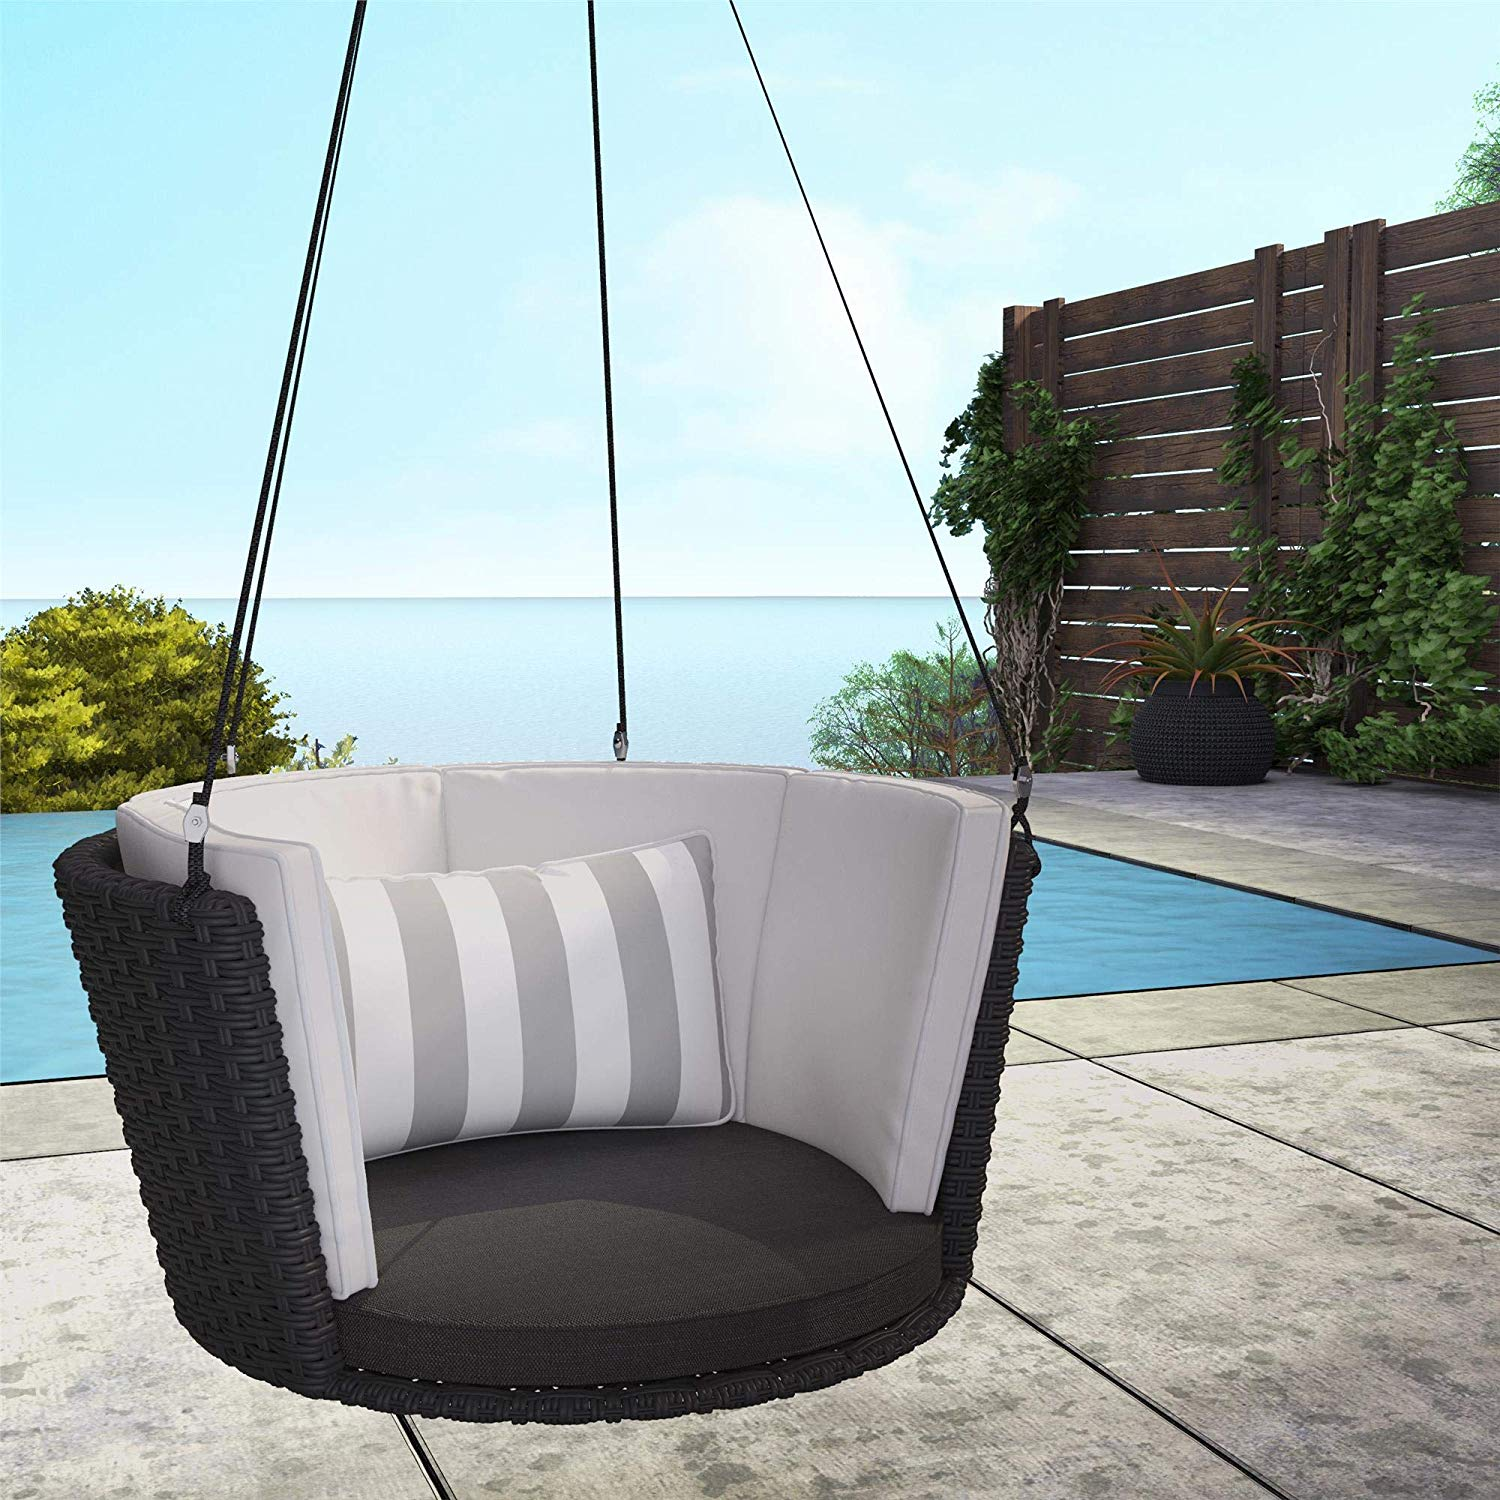 one-person-wicker-porch-swing-black-wicker-round-design-with-ropes